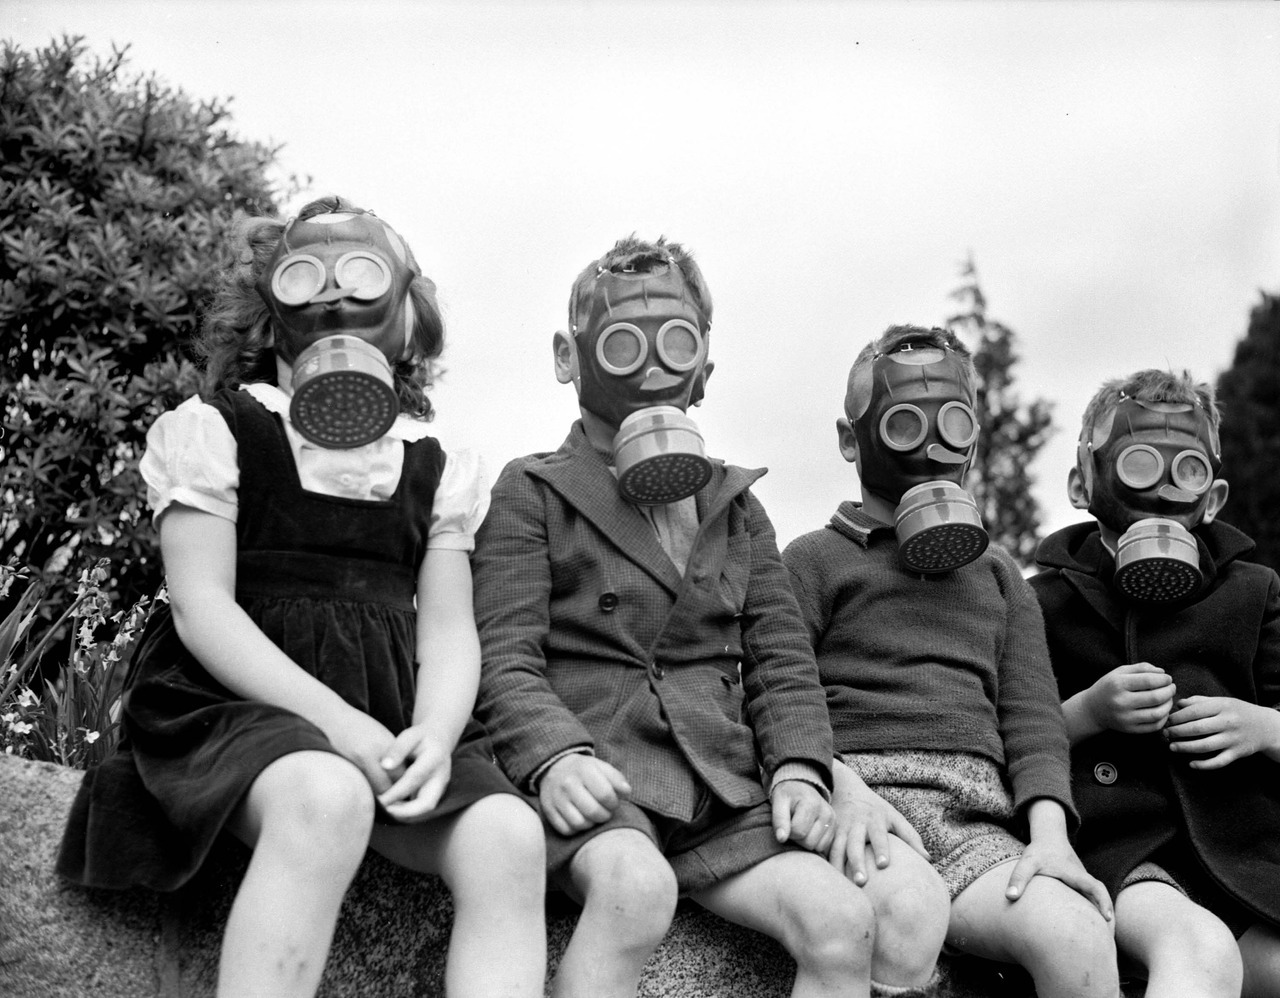 Gas Mask Demonstration, 1943 Source: Photo by Don Coltman and Steffens Colmer, City of Vancouver Archives #586-1239